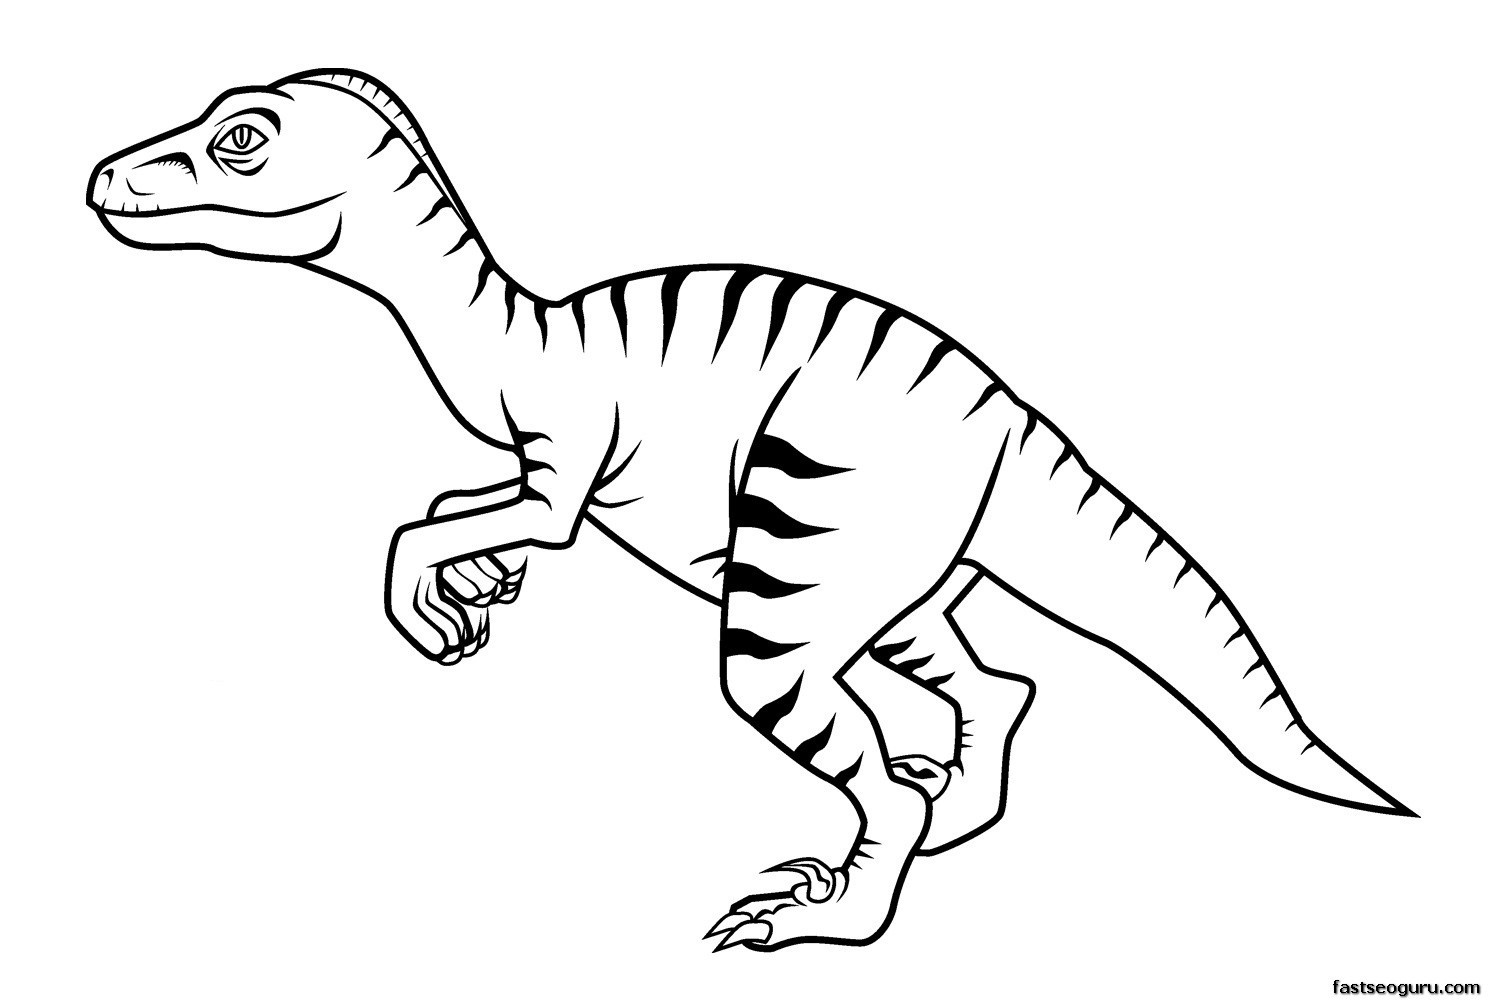 Best ideas about Free Printable Coloring Sheets Dinosaurs . Save or Pin Free Printable Dinosaur Coloring Pages For Kids Now.